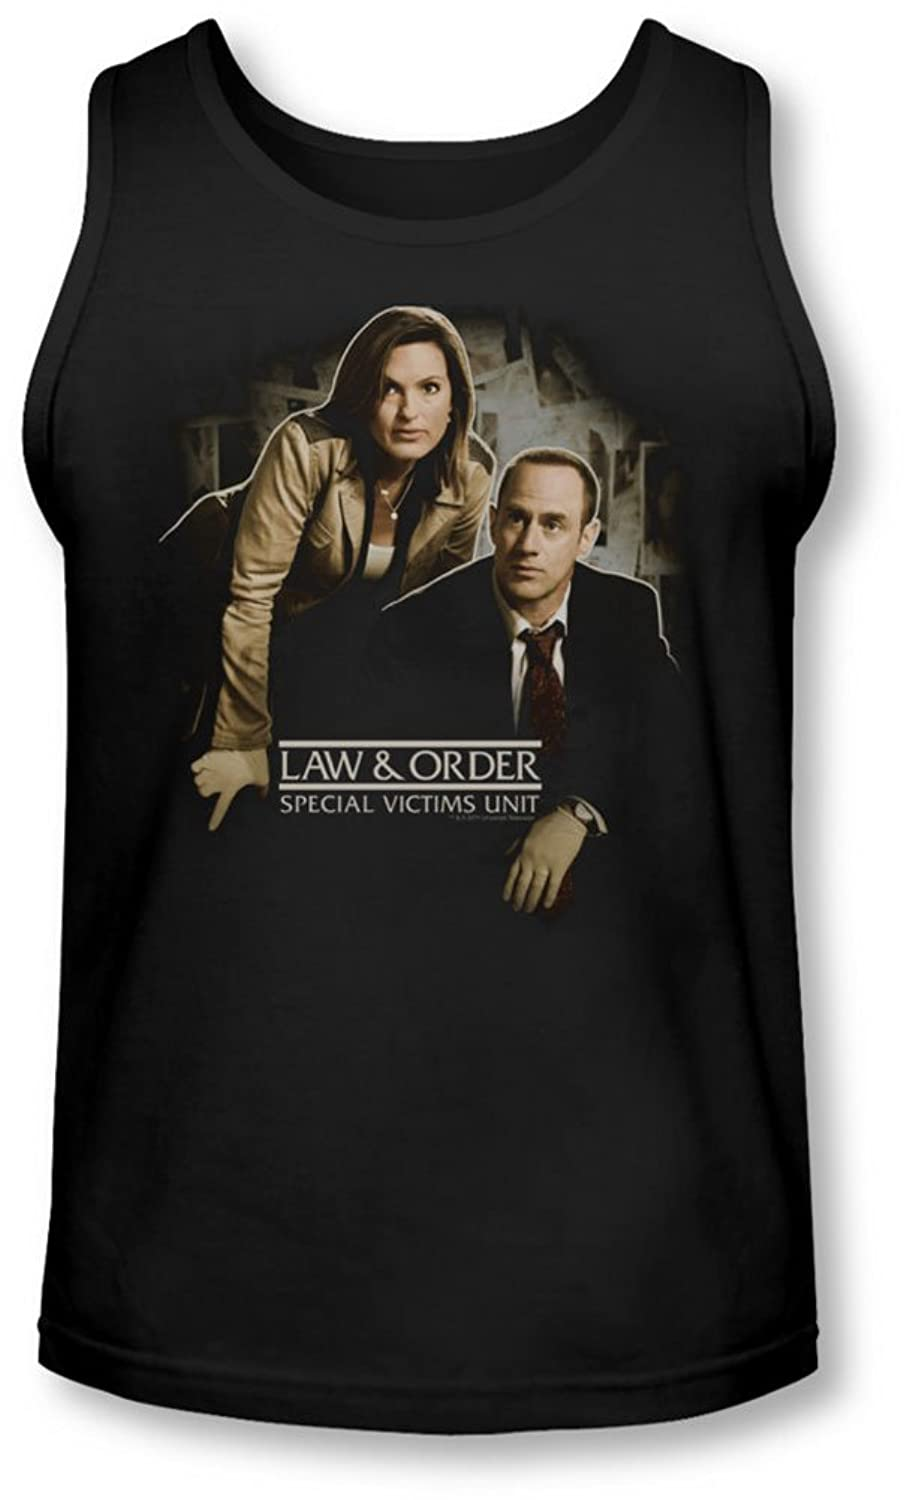 Law & Order: Special Victim's Unit - Mens Helping Victims Tank Top